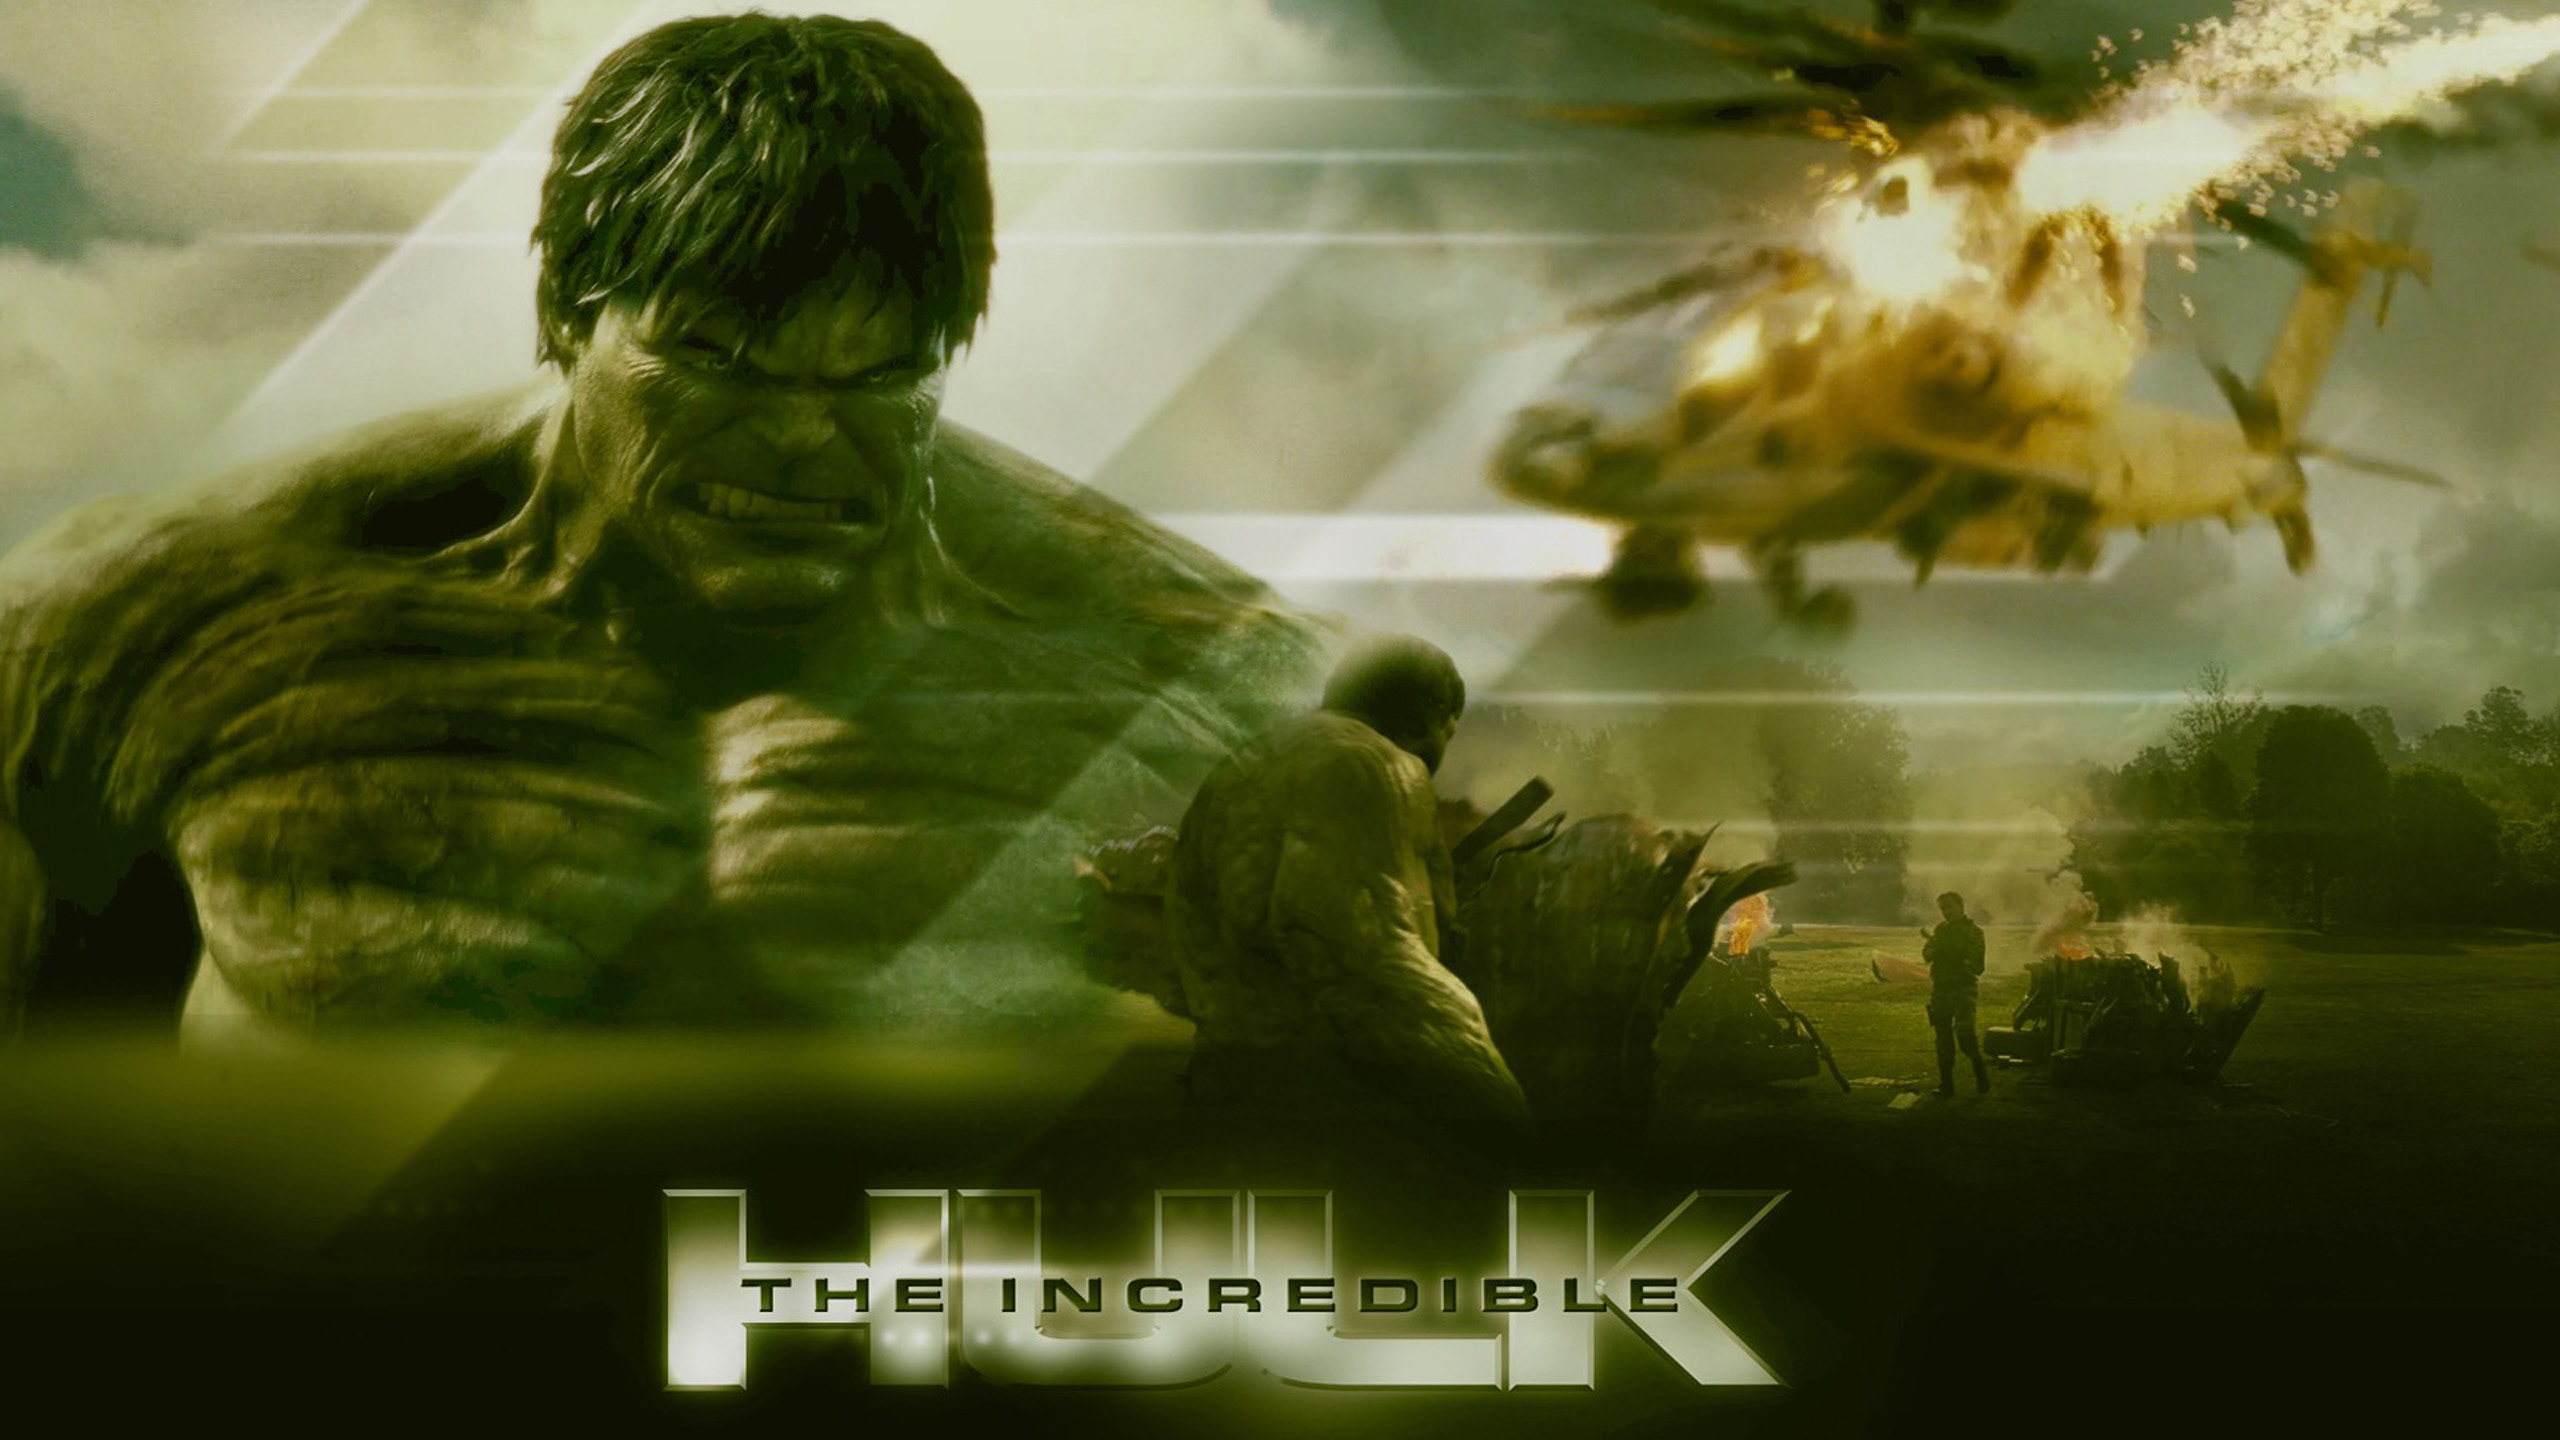 15 The Incredible Hulk Wallpapers | The Incredible Hulk Backgrounds